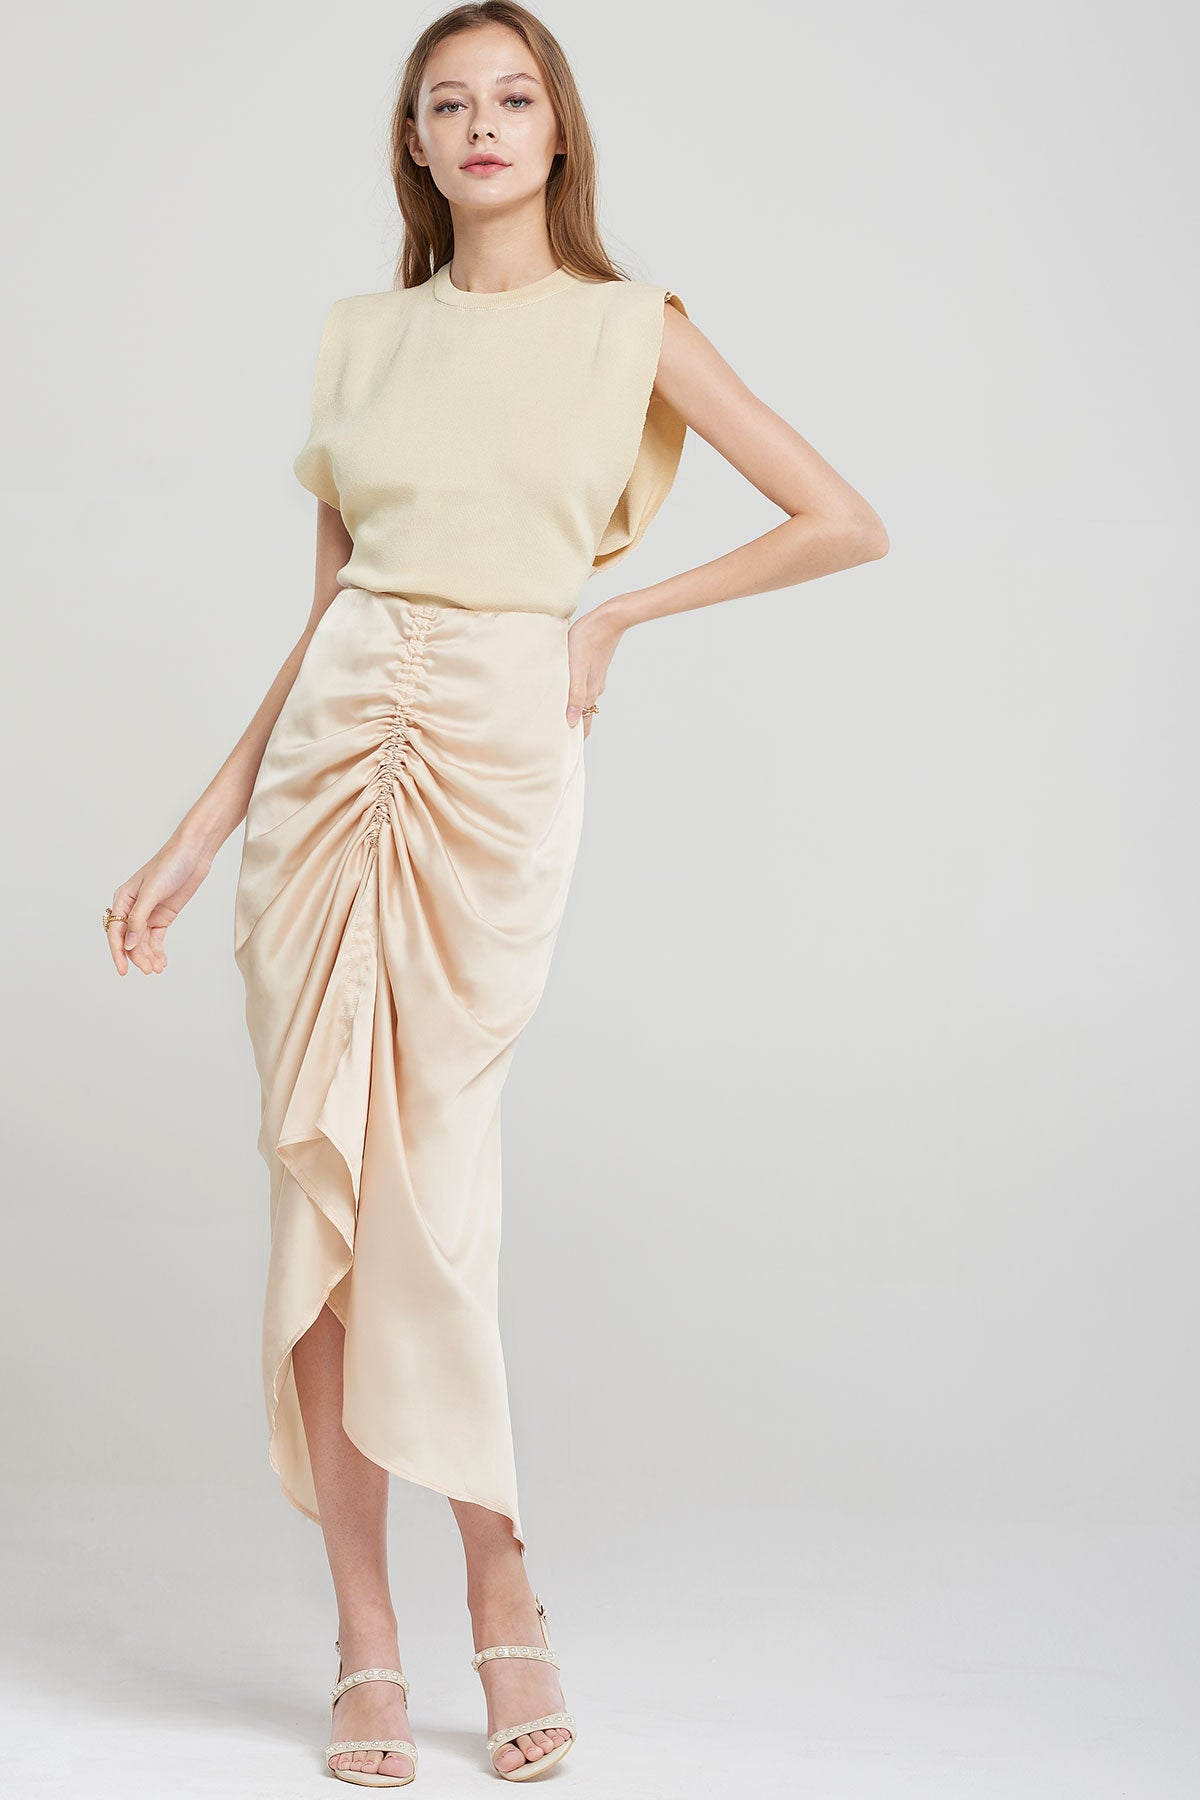 Layla Drapery Shirred Long Skirt-Beige